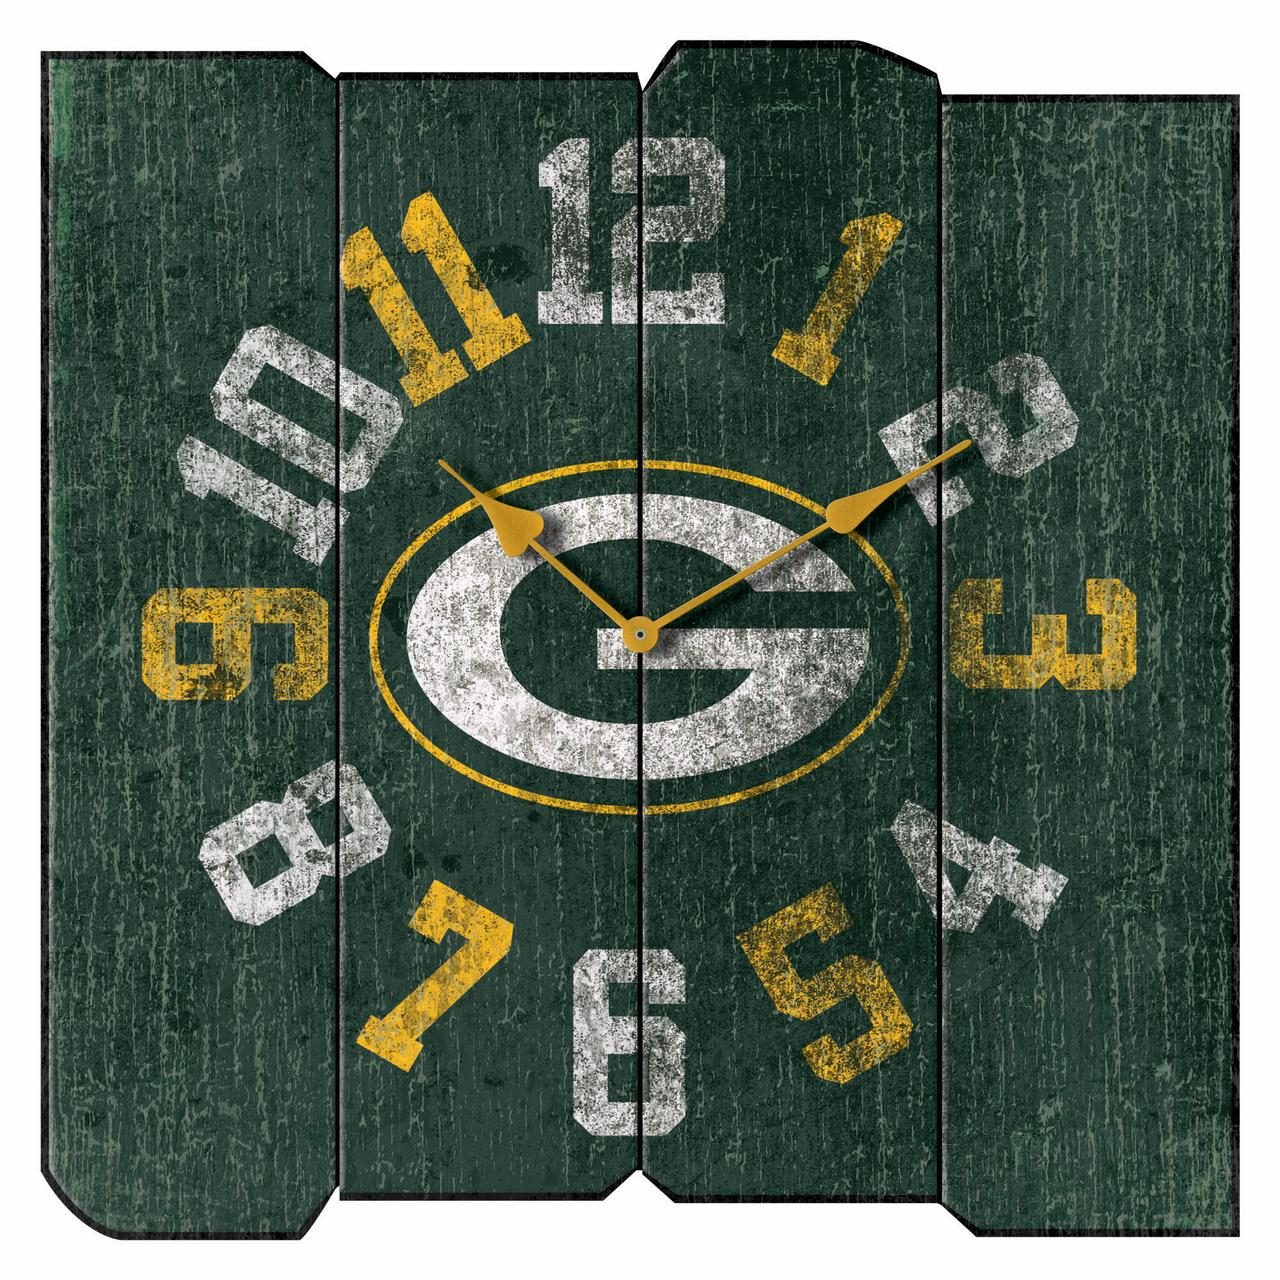 "Green Bay Packers 16"" Vintage Sqaure Wall Clock - Green - No Size"